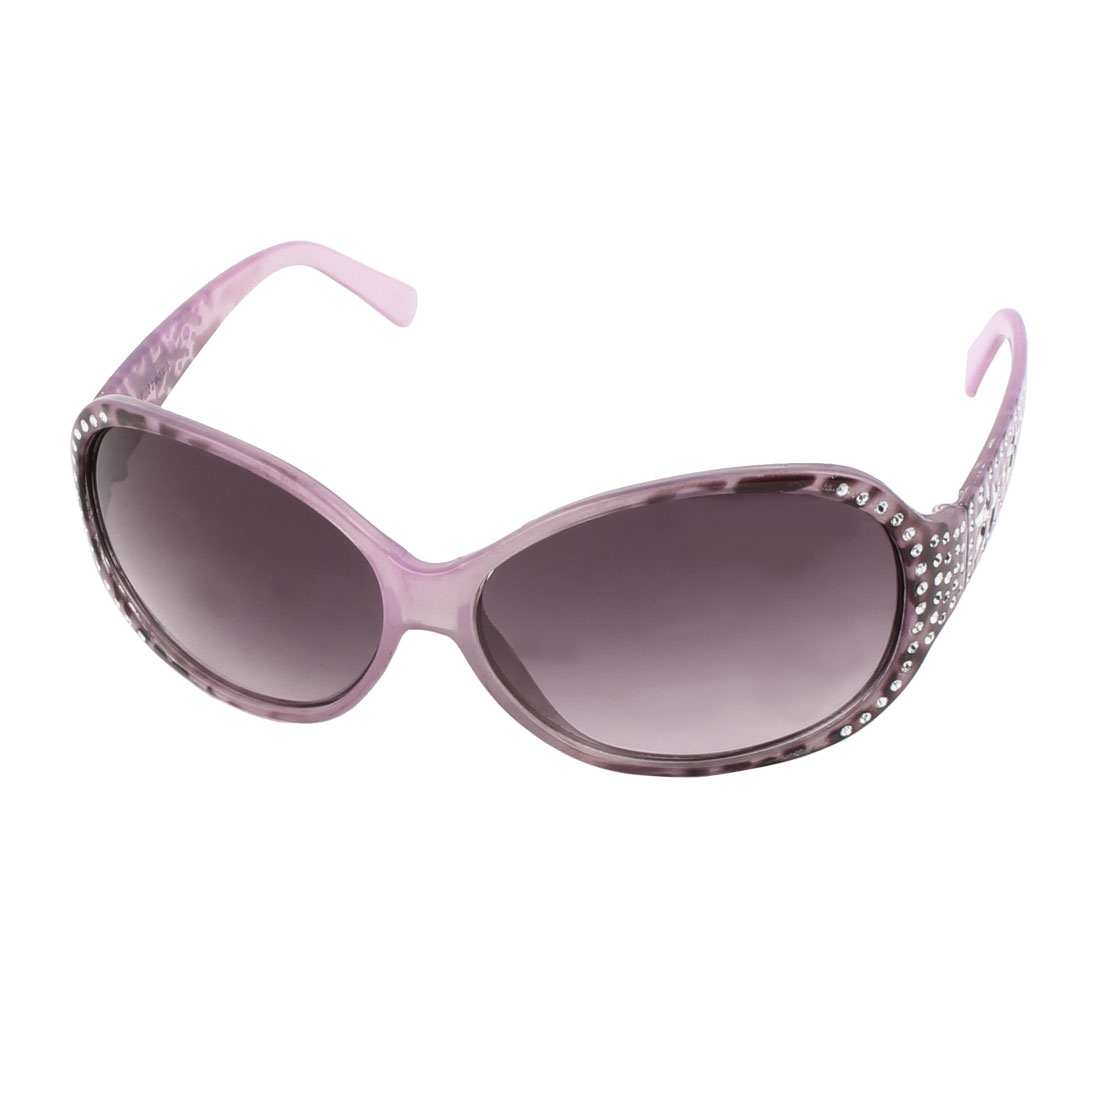 Women Faux Rhinestone Detail Teardrop Lens Eyewear Sunglasses Shade Purple